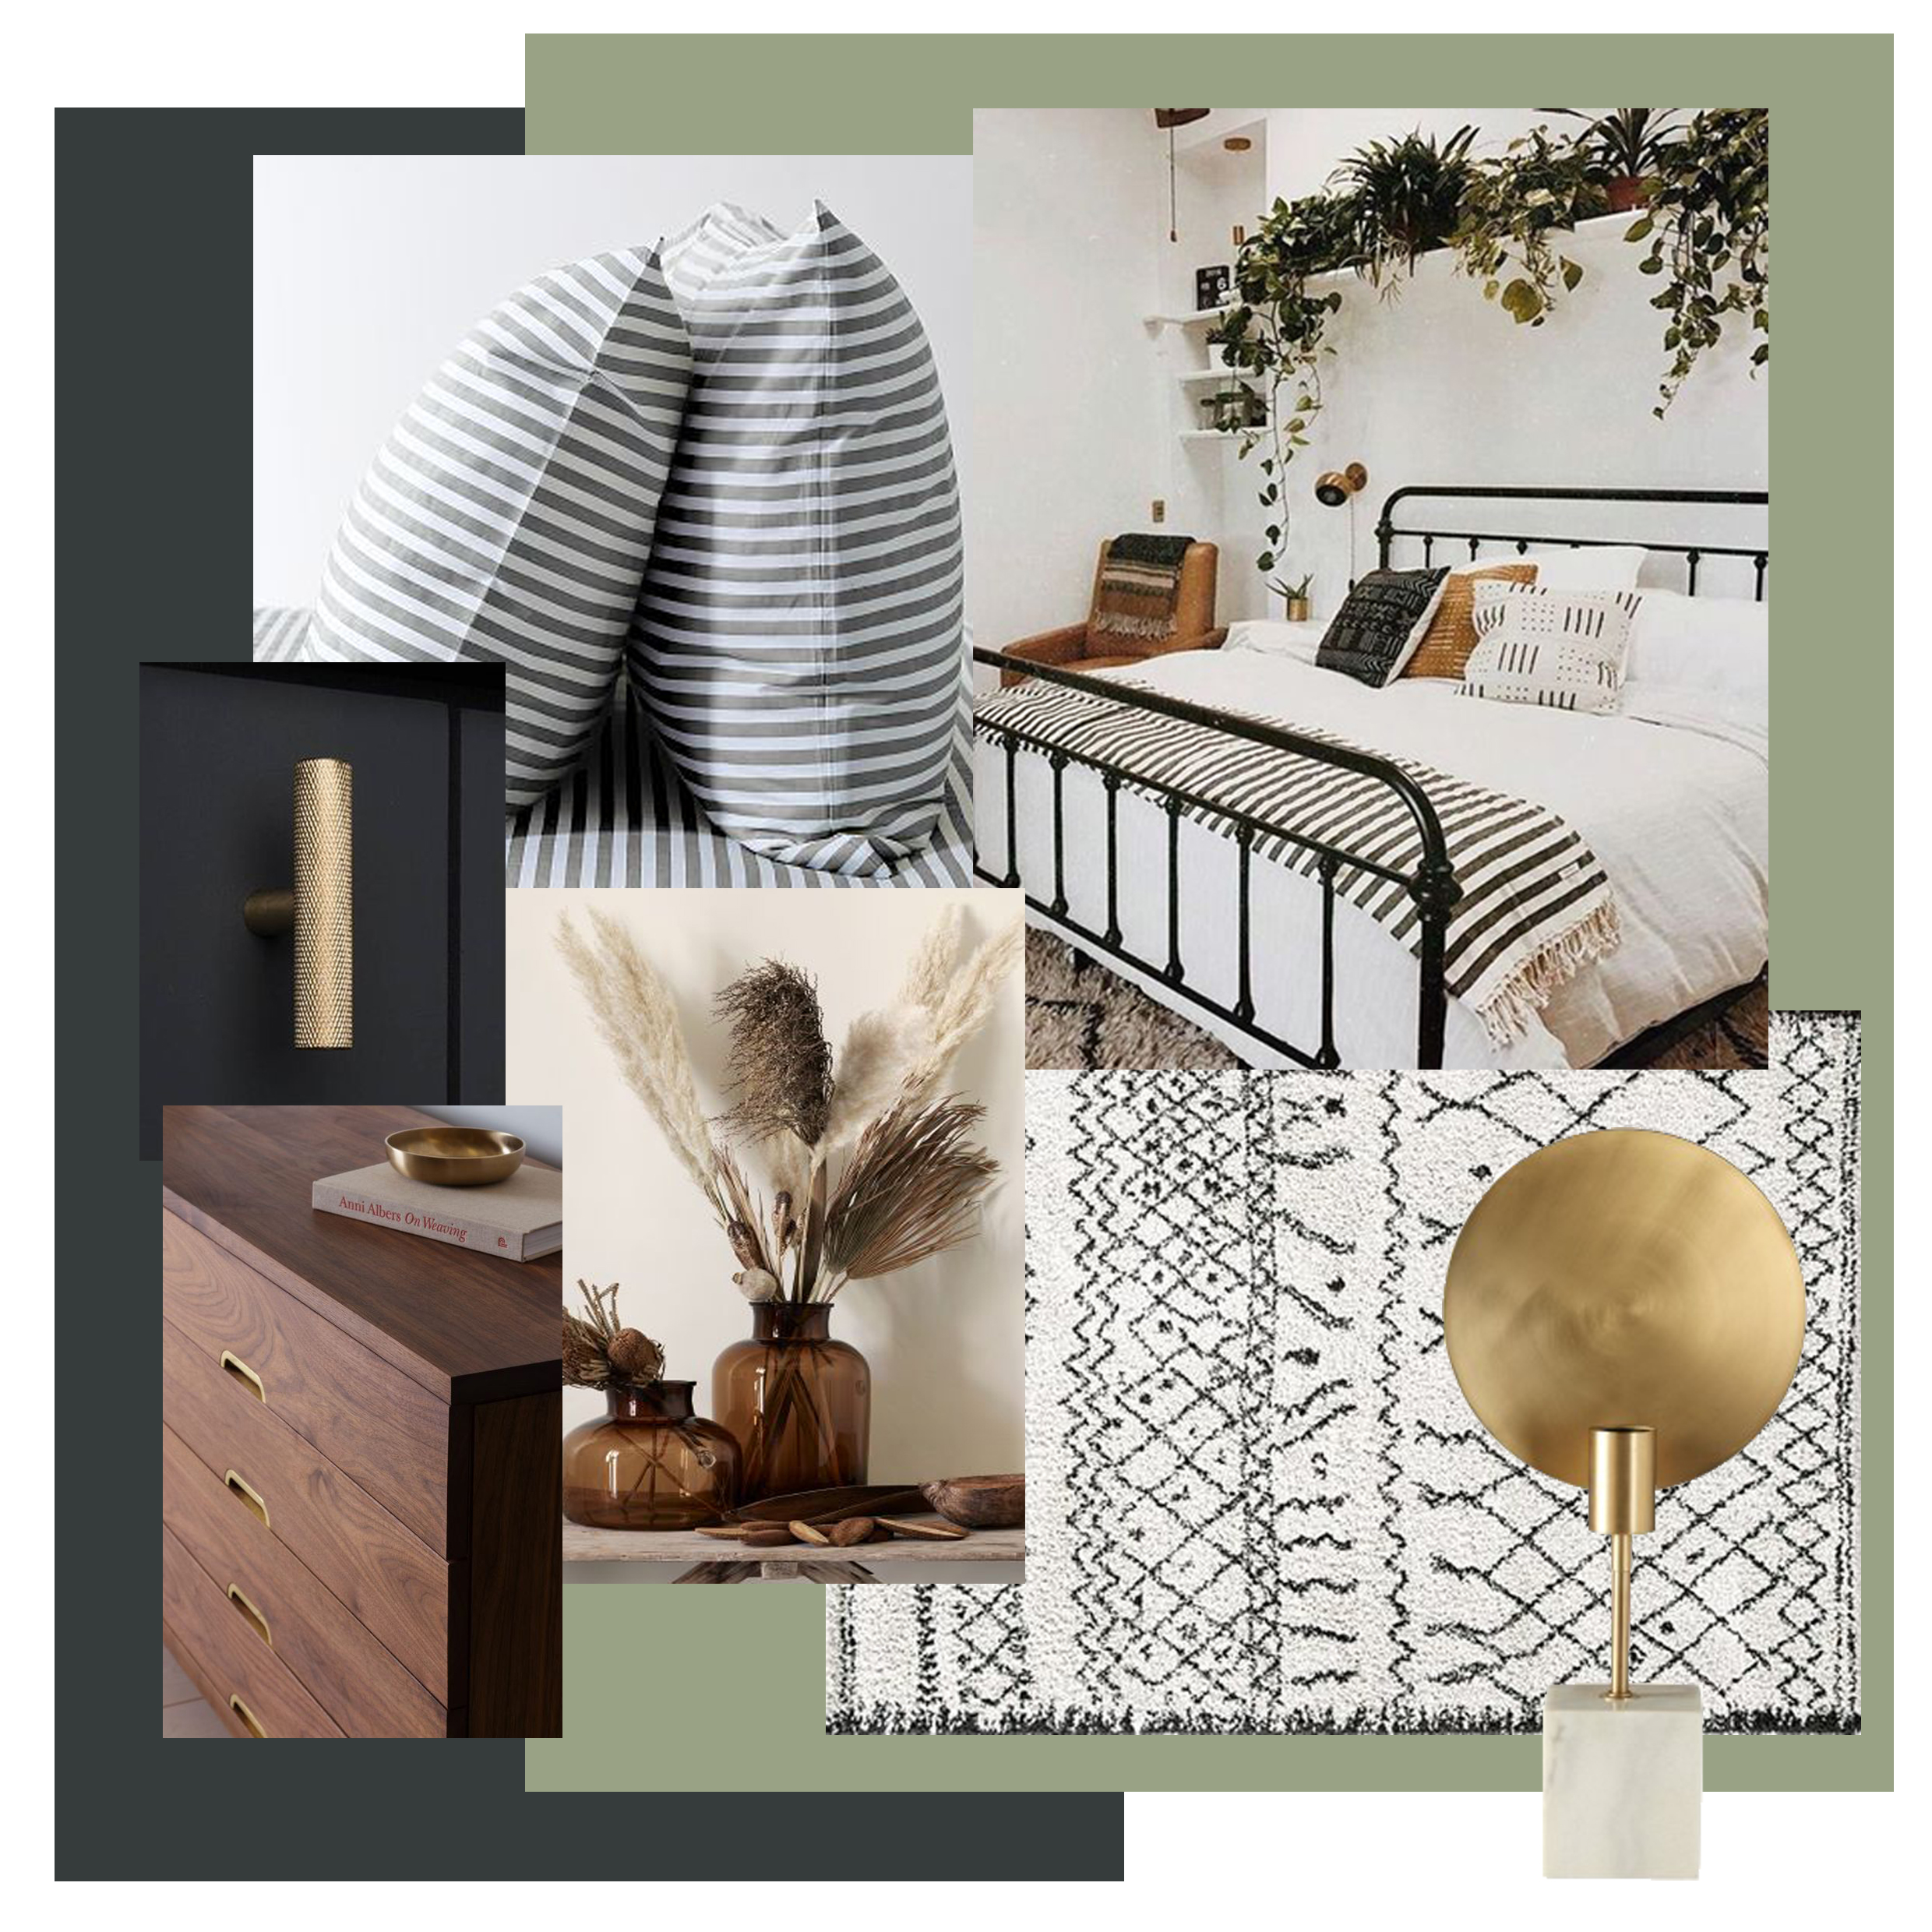 Masterbedroom_Moodboard